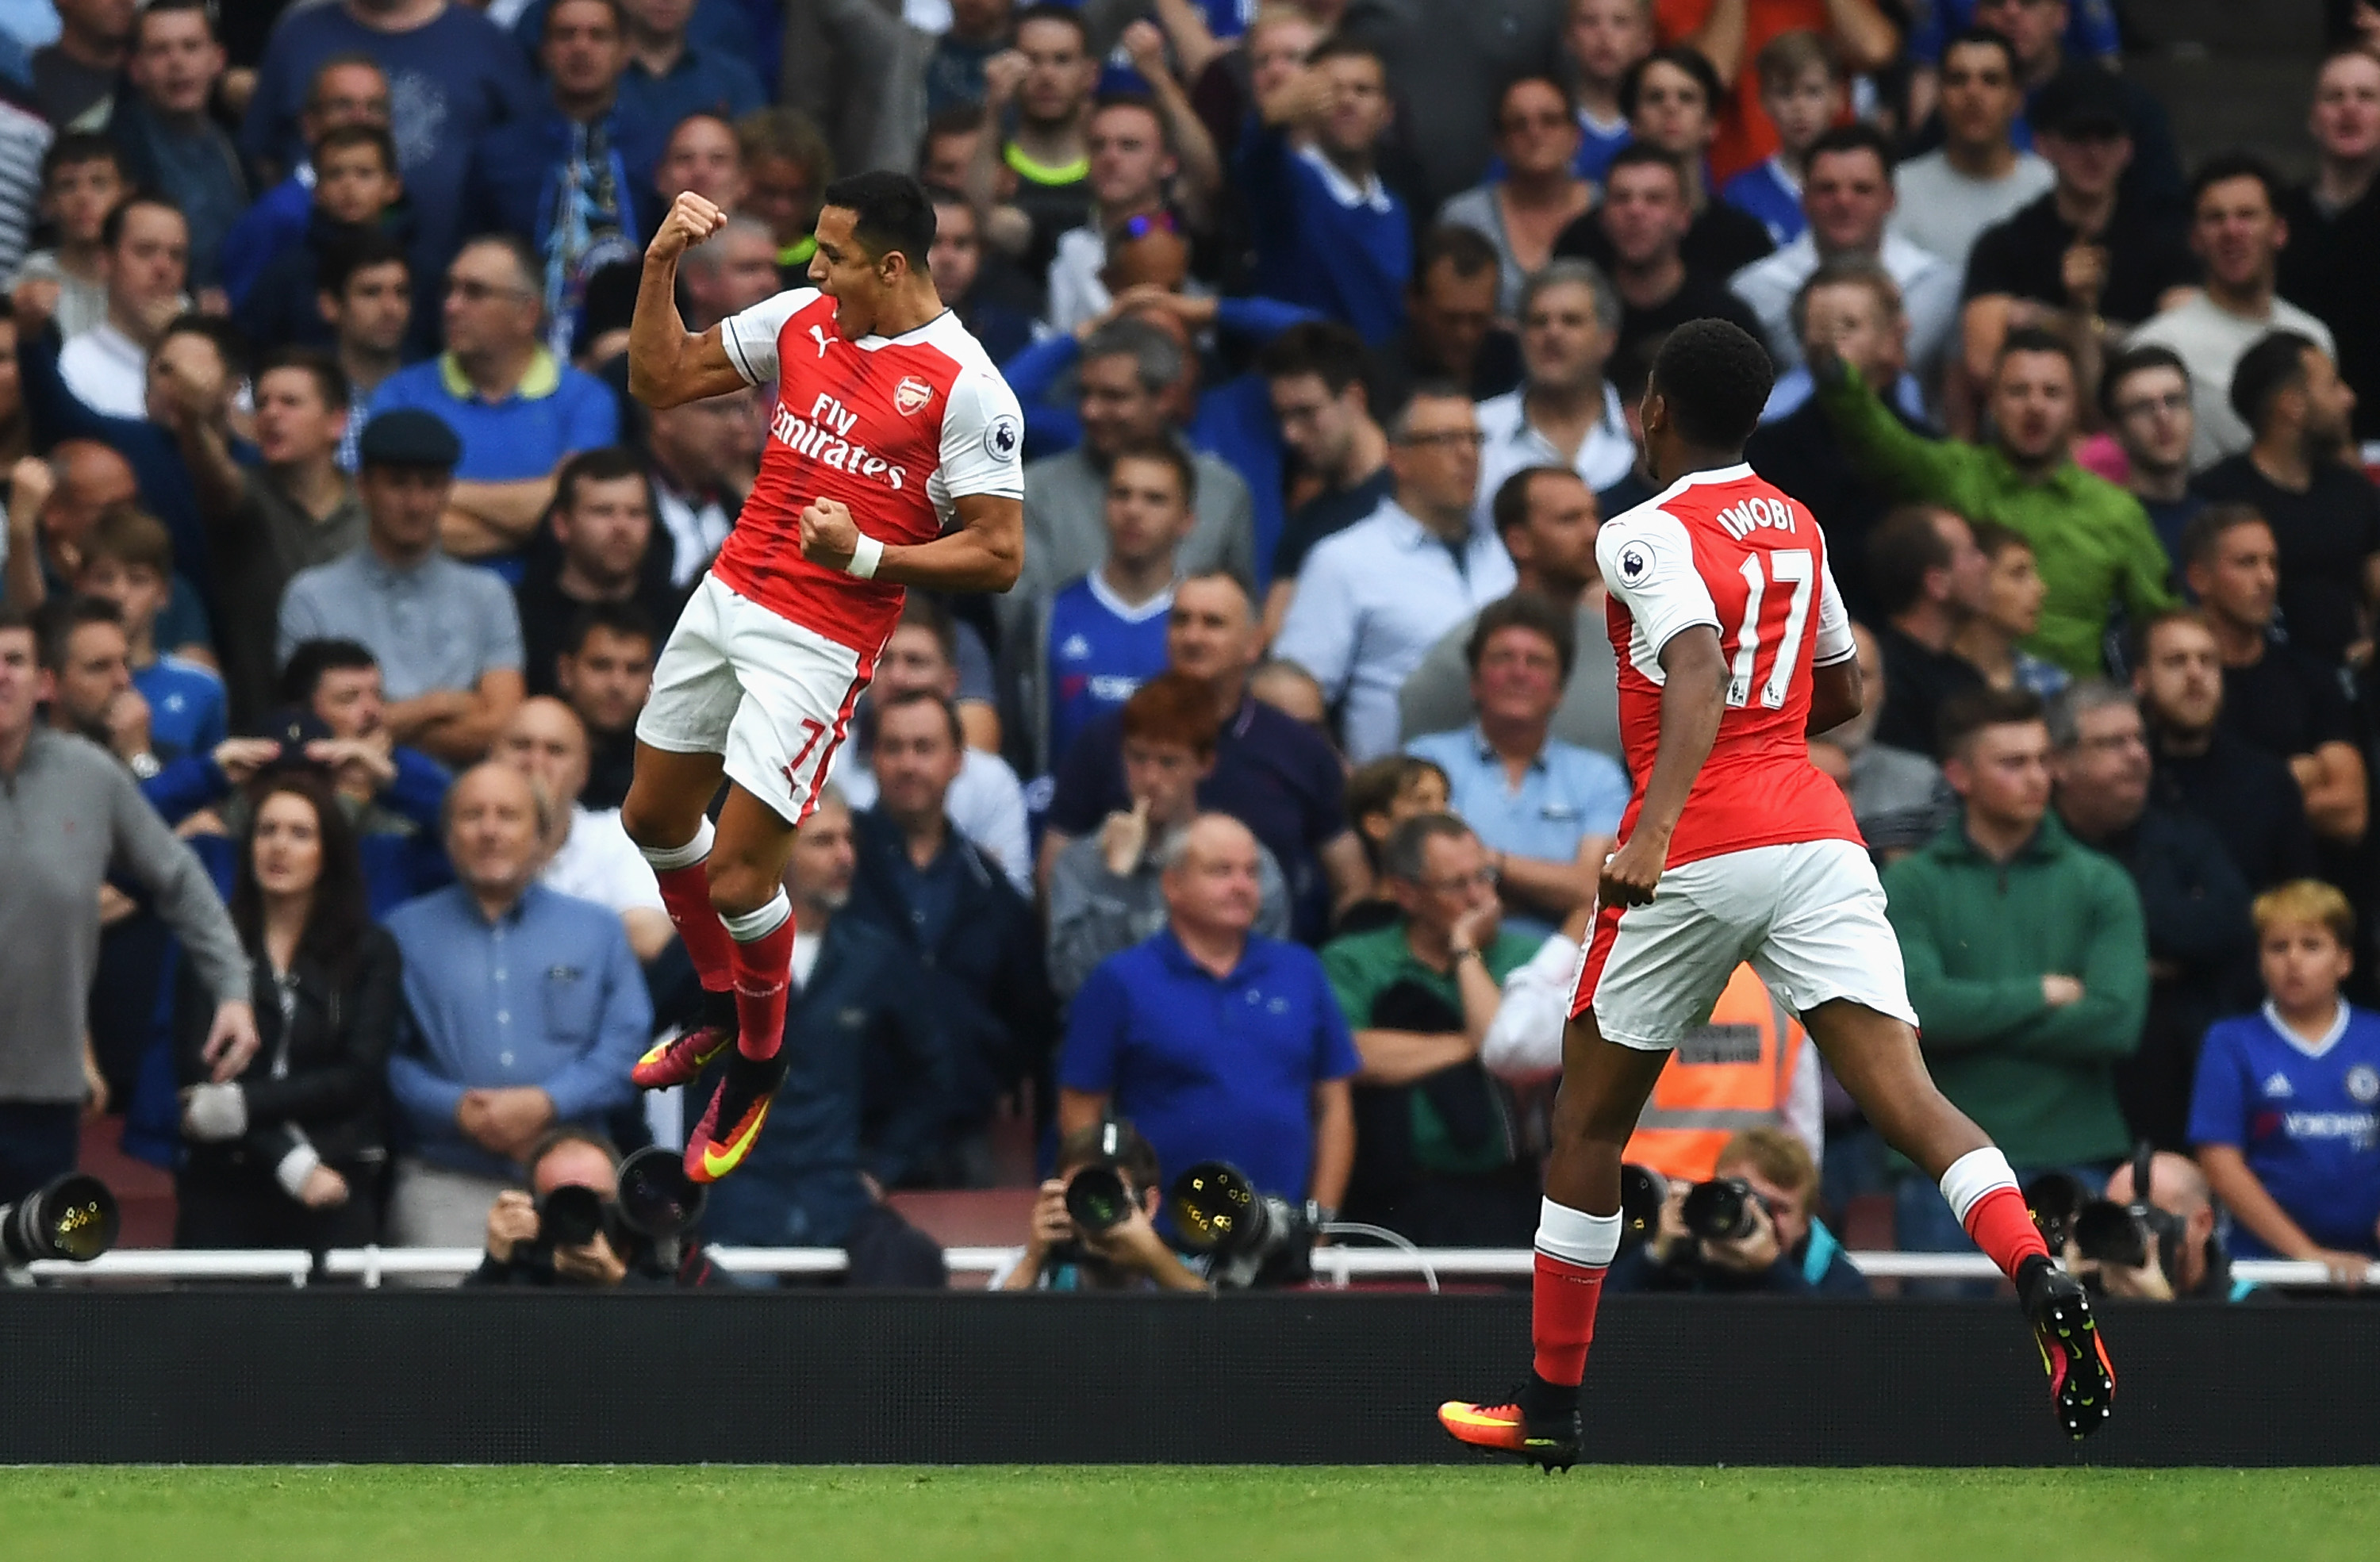 http://cdn.fansided.com/wp-content/uploads/getty-images/2017/06/610109272-arsenal-v-chelsea-premier-league.jpg.jpg